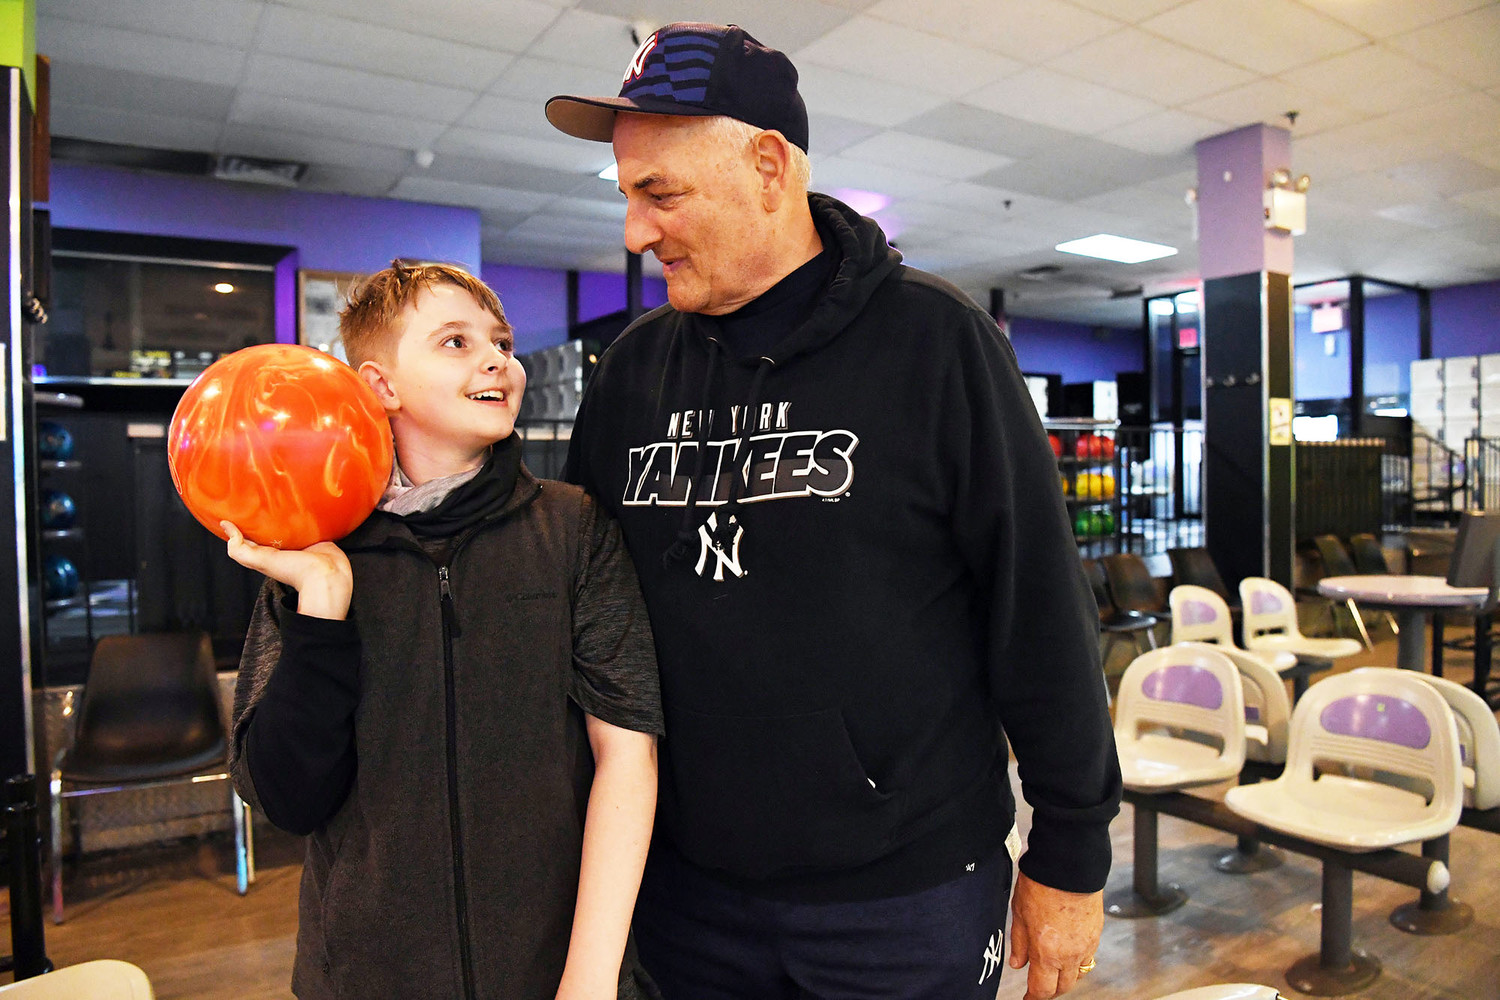 Jack Harkin, a sixth-grader at Intermediate School 24 on Staten Island, smiles with his grandfather Larry Ambrosino at Rab's Country Lanes April 17. Harkin, who started bowling last year, looks forward to spending time with his grandfather each Tuesday as he competes in the Staten Island CYO bowling league.